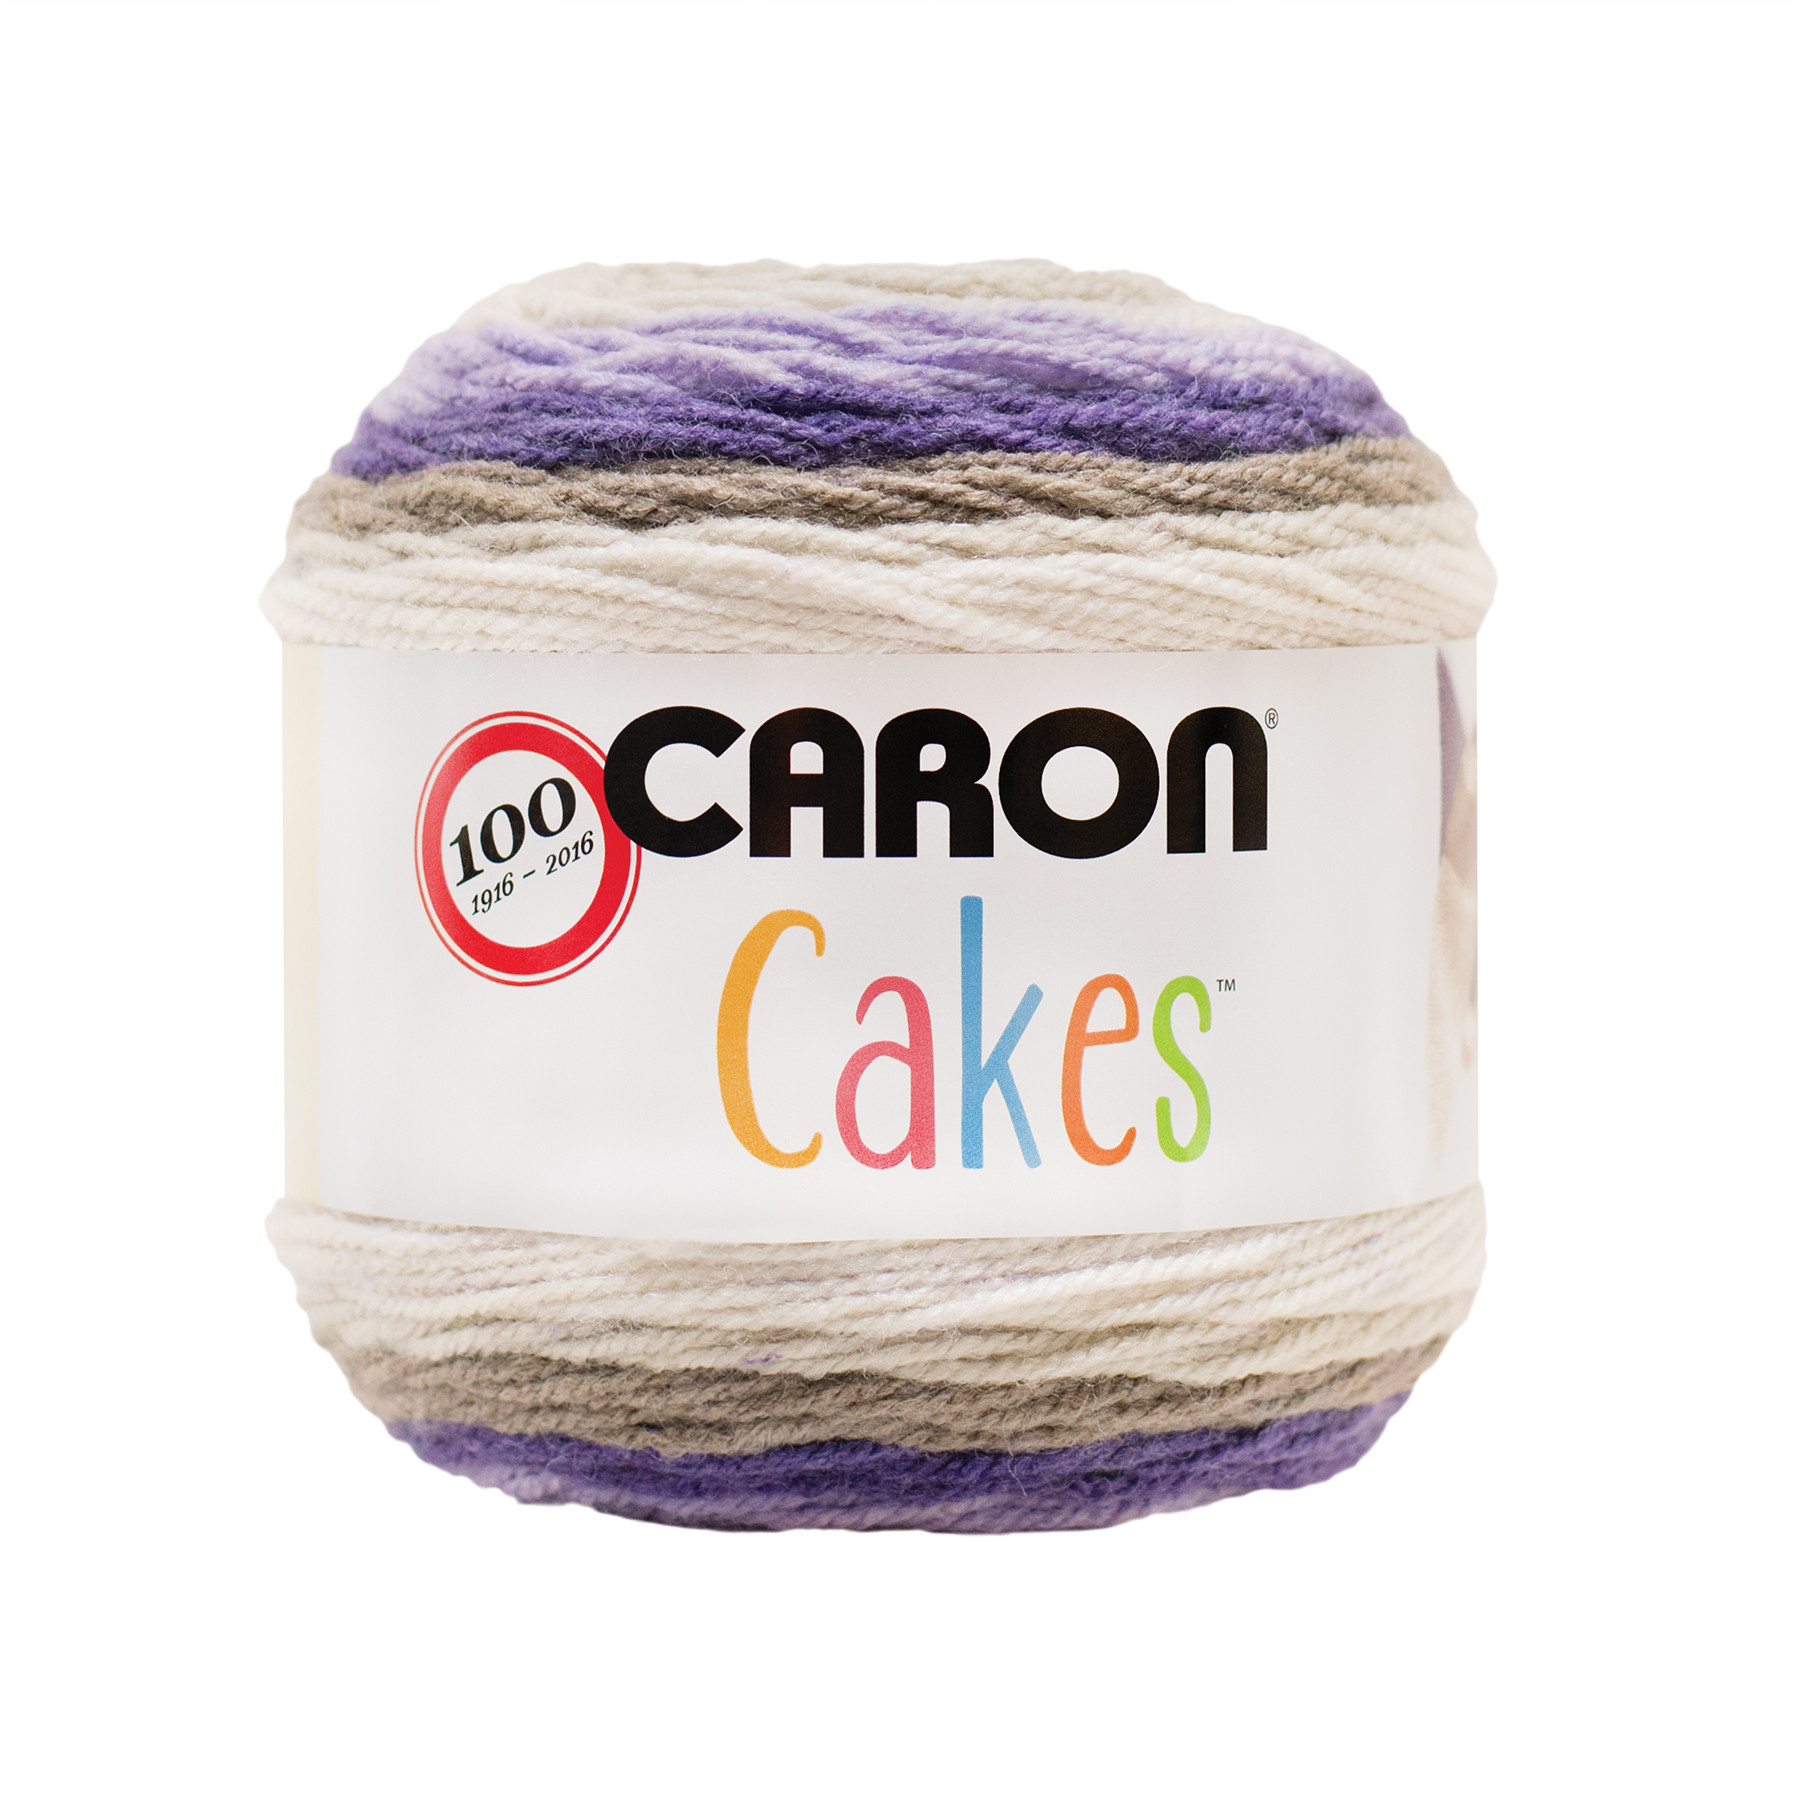 Best Of Caron Cakes 200g Caron Cotton Cakes Yarn Of Amazing 48 Photos Caron Cotton Cakes Yarn